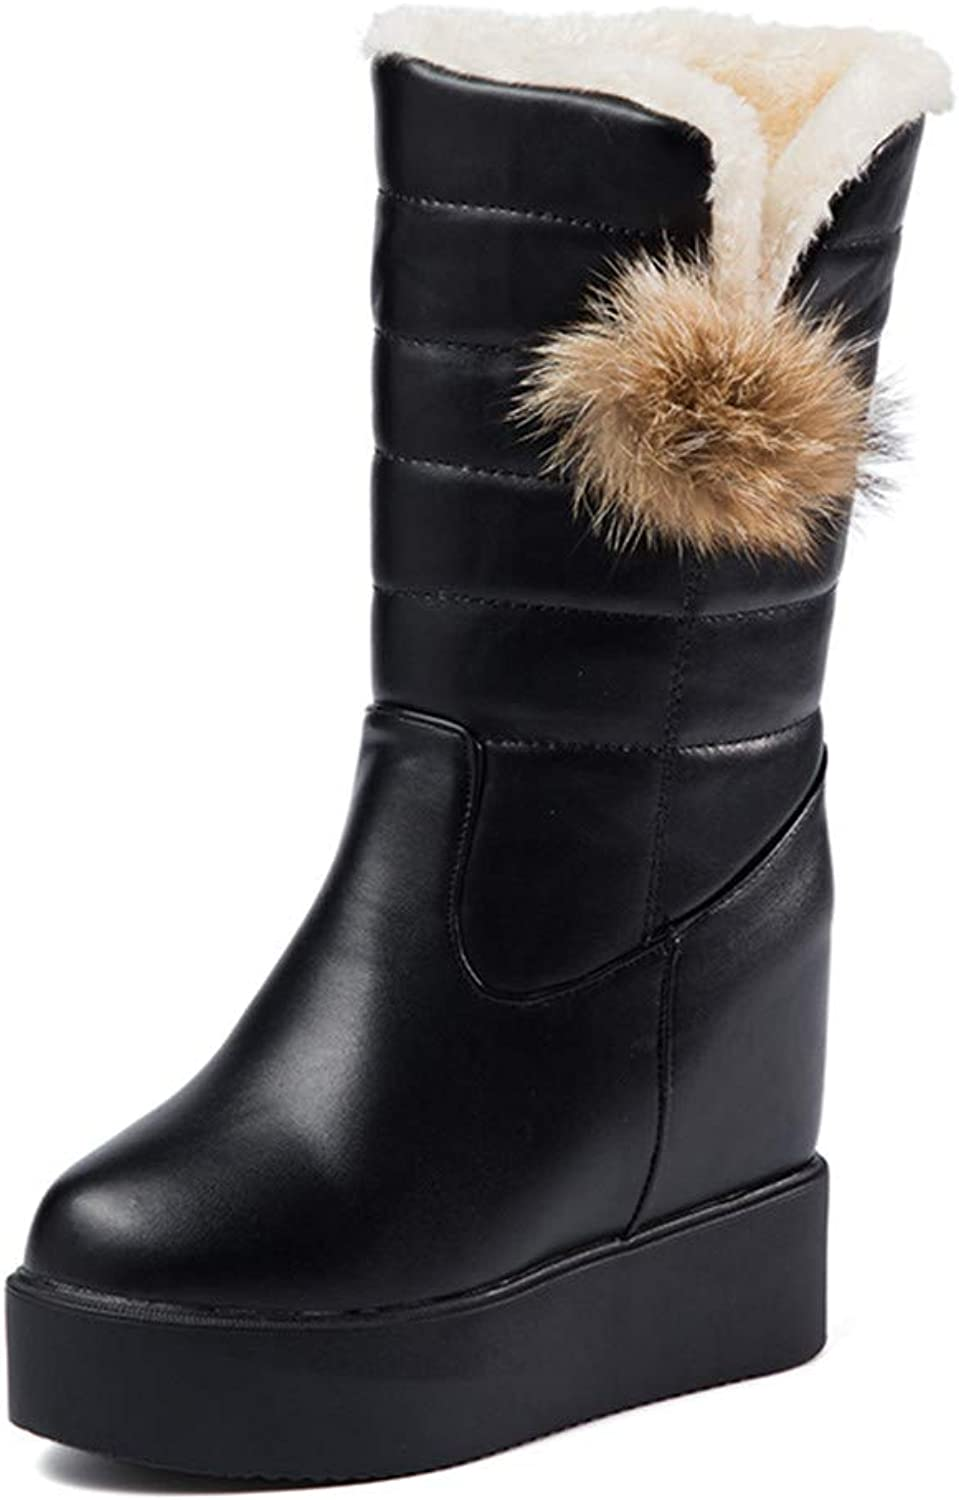 R-Anketsy Women Classic Snow Boots Slip On Warm Thick Fur Winter Boots Platform Ladies Mid Calf Cotton Boots